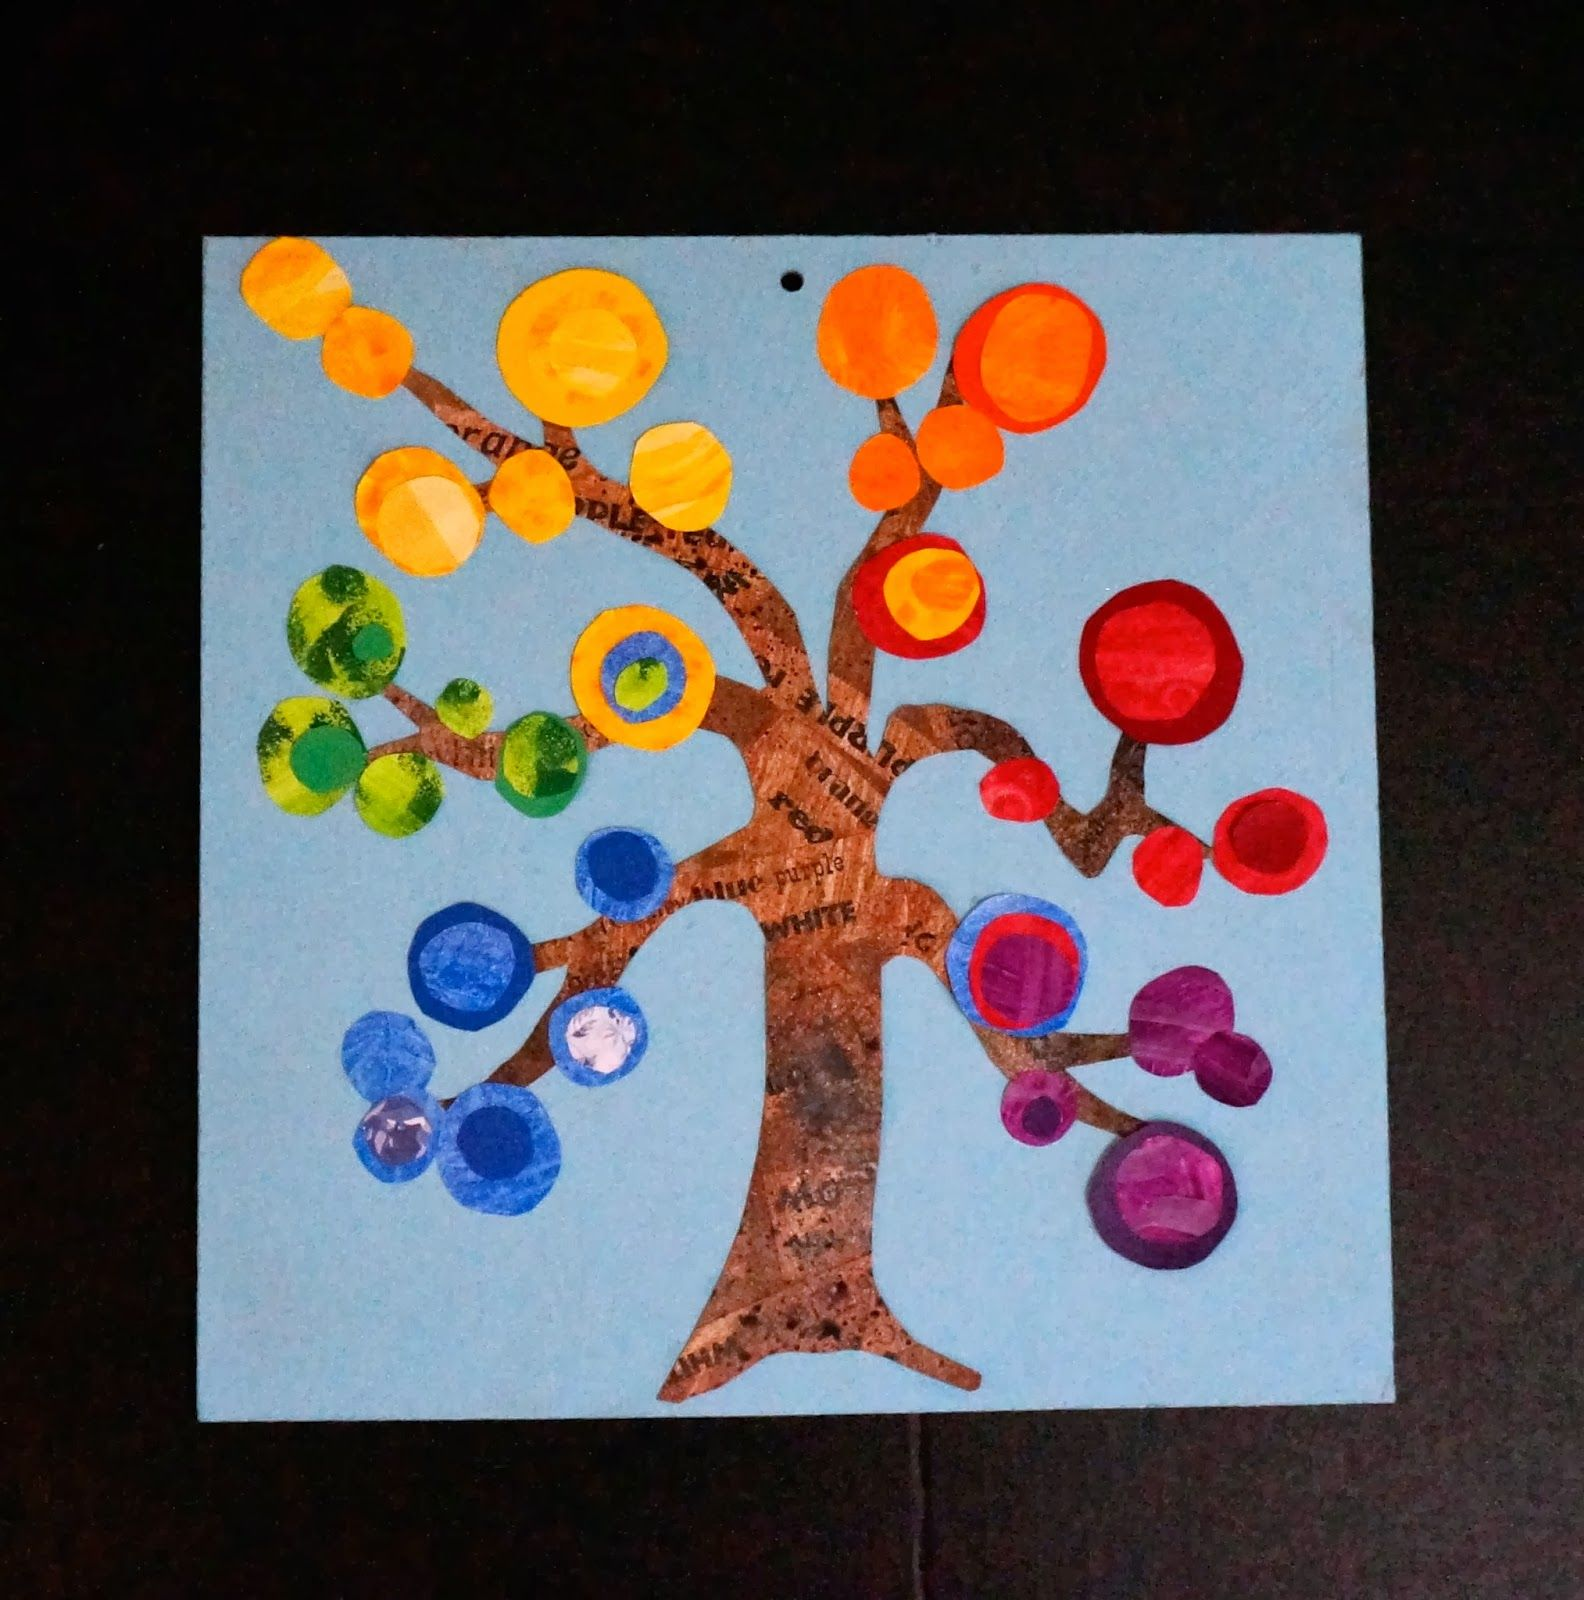 Color wheel art projects for kids - Color Wheel Art